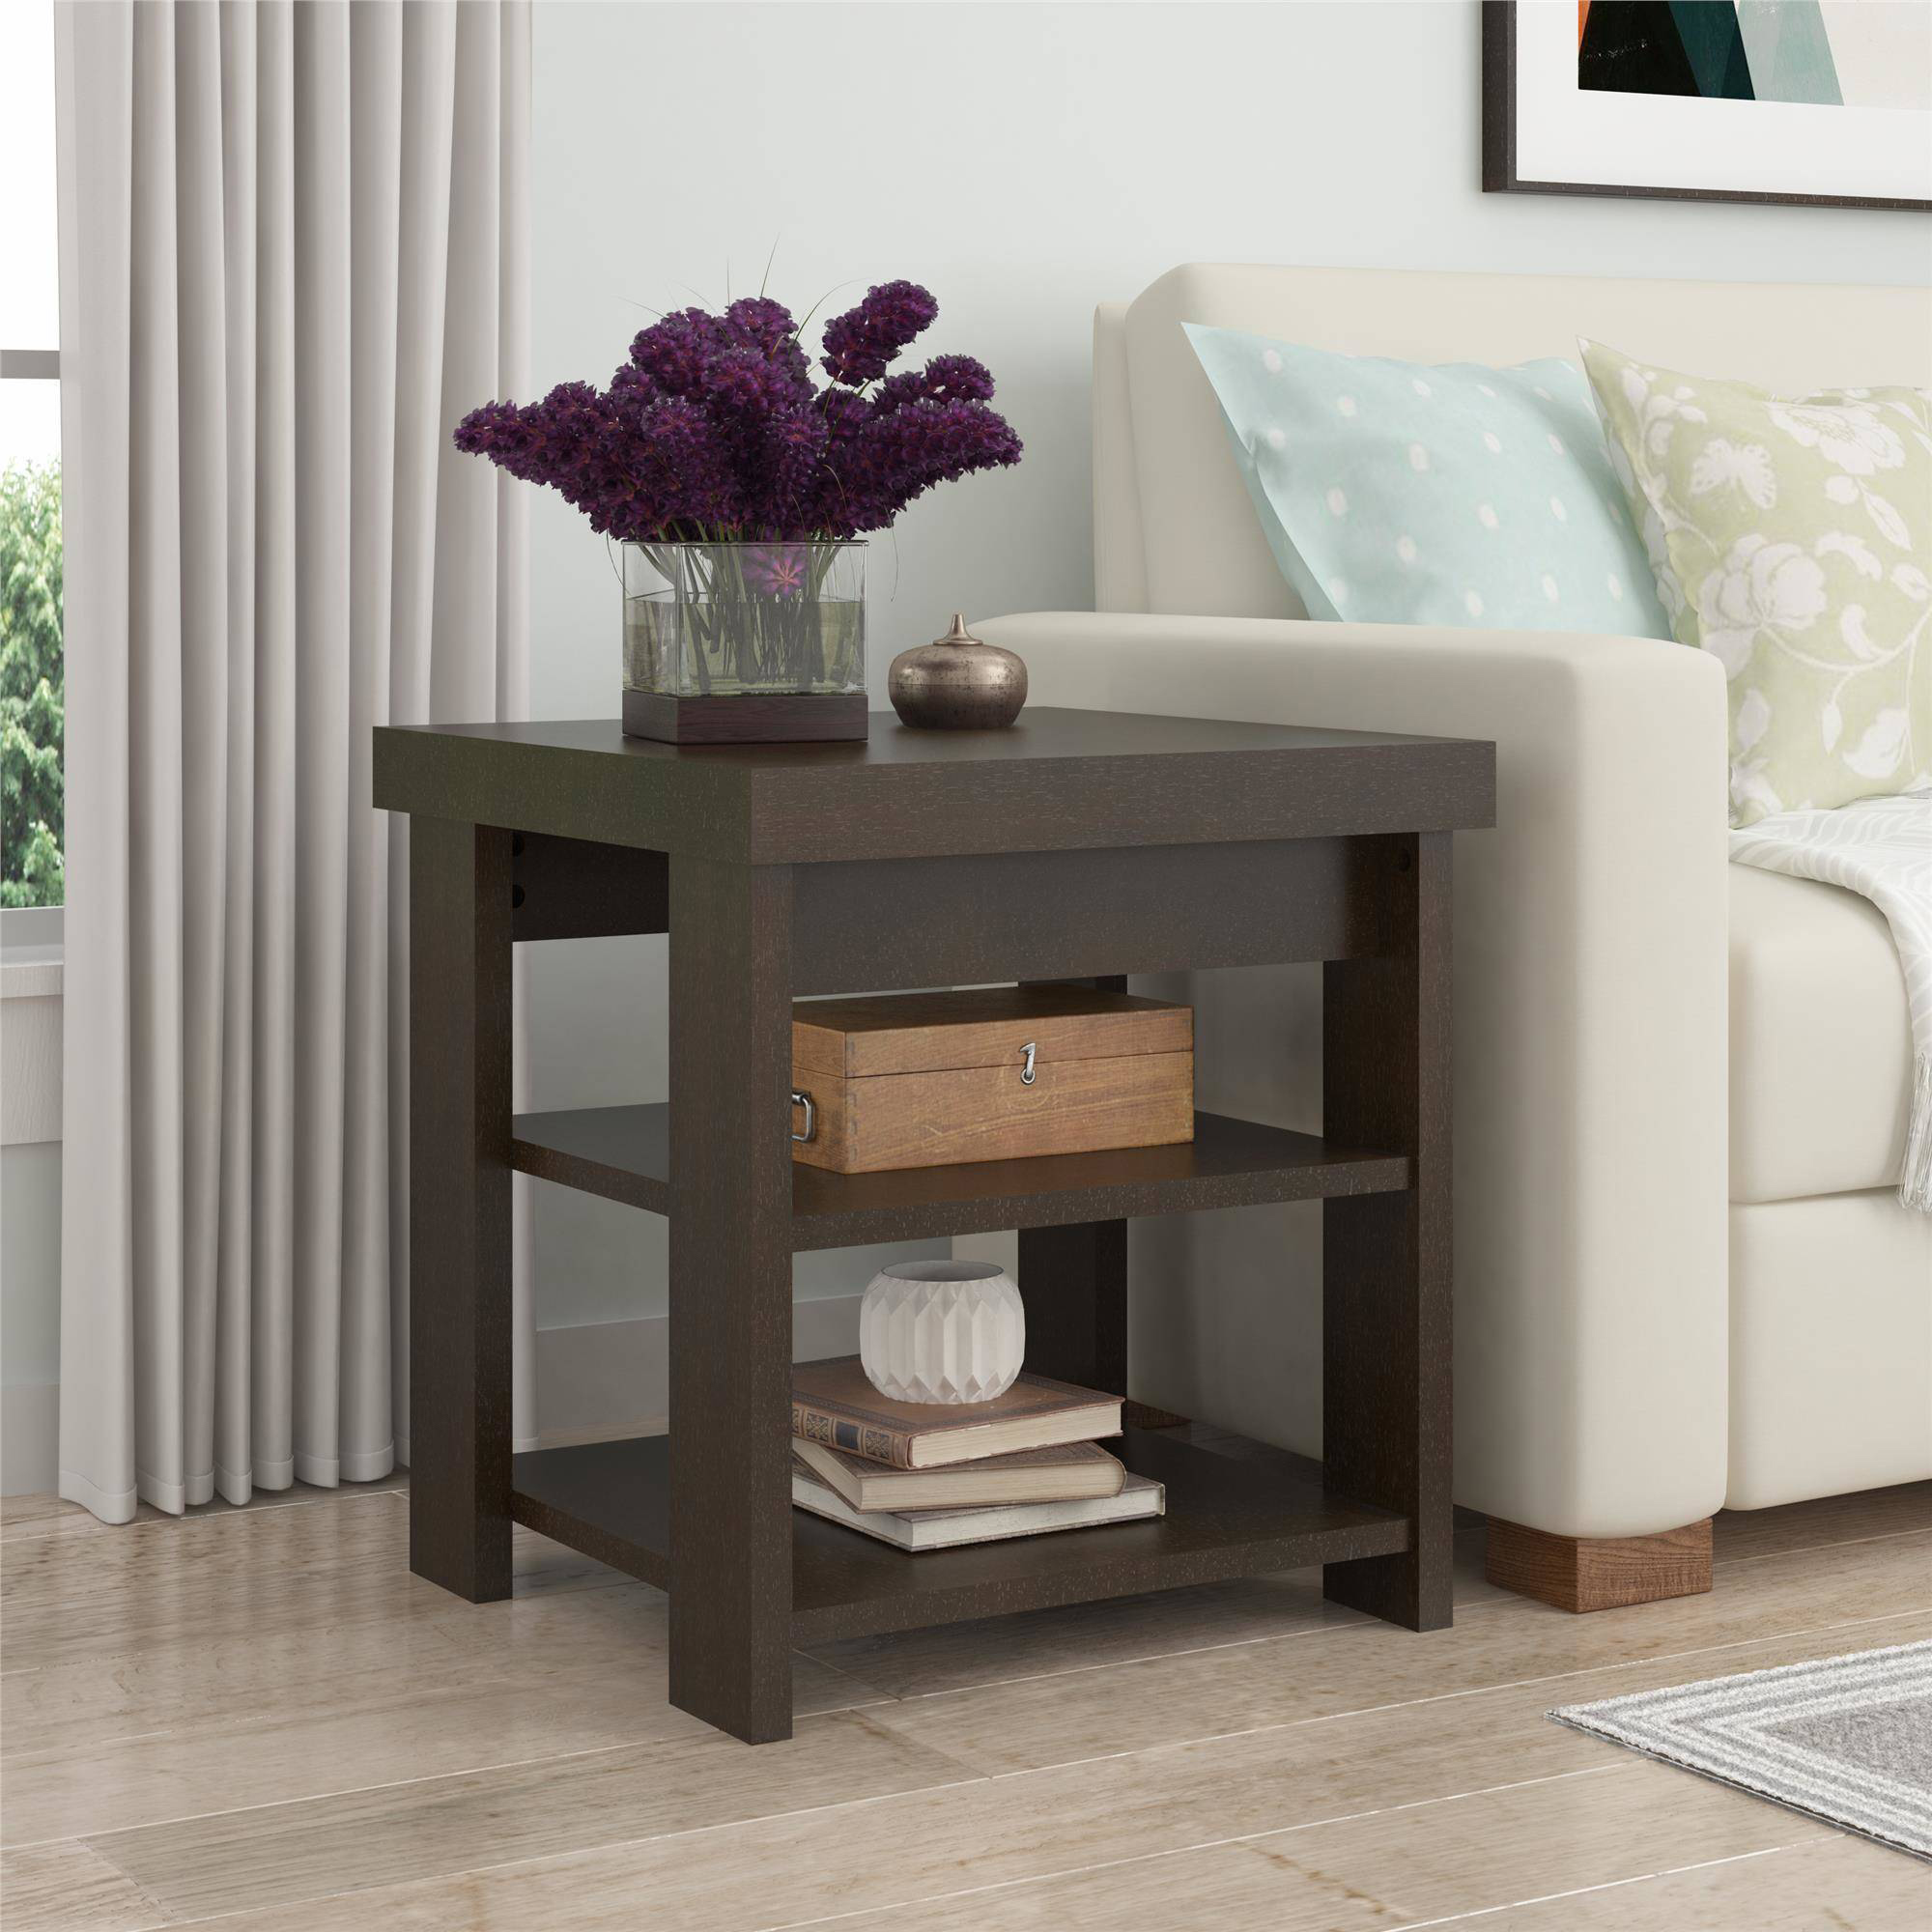 Ameriwood Home Jensen End Table, Multiple Colors